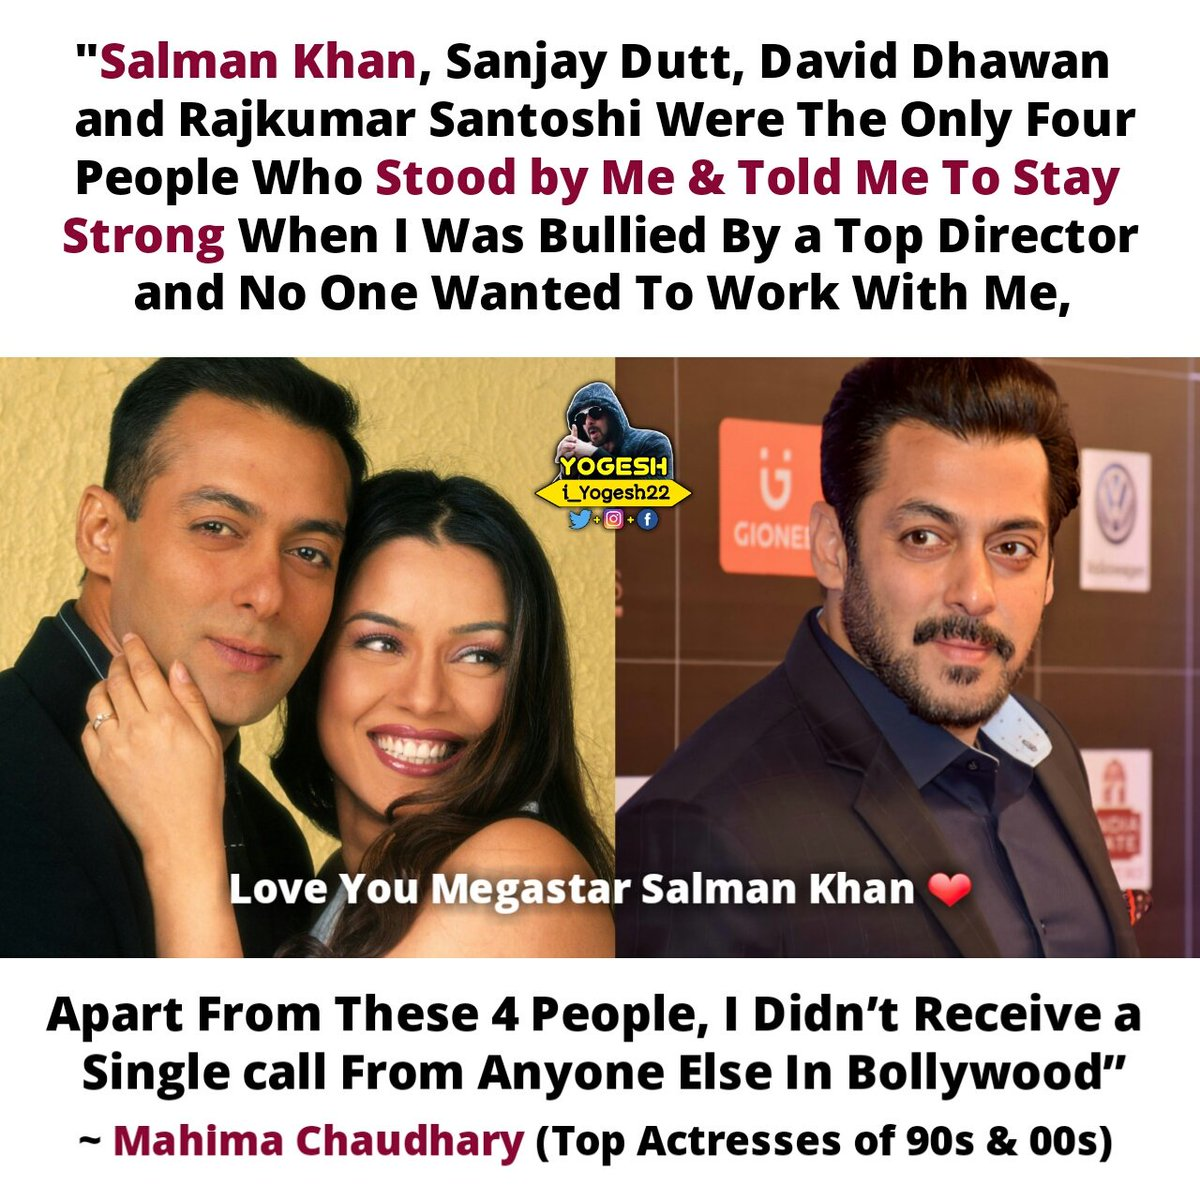 """""""#SalmanKhan, #SanjayDutt, #DavidDhawan and #RKSantoshi Were The Only 4 People Who Stood by Me & Told Me To Stay Strong When I Was Bullied By a Top Director, Apart From These 4 People, I Didn't Receive a Single call From Anyone Else In Bollywood"""" ~ #MahimaChaudhary (Actress)"""